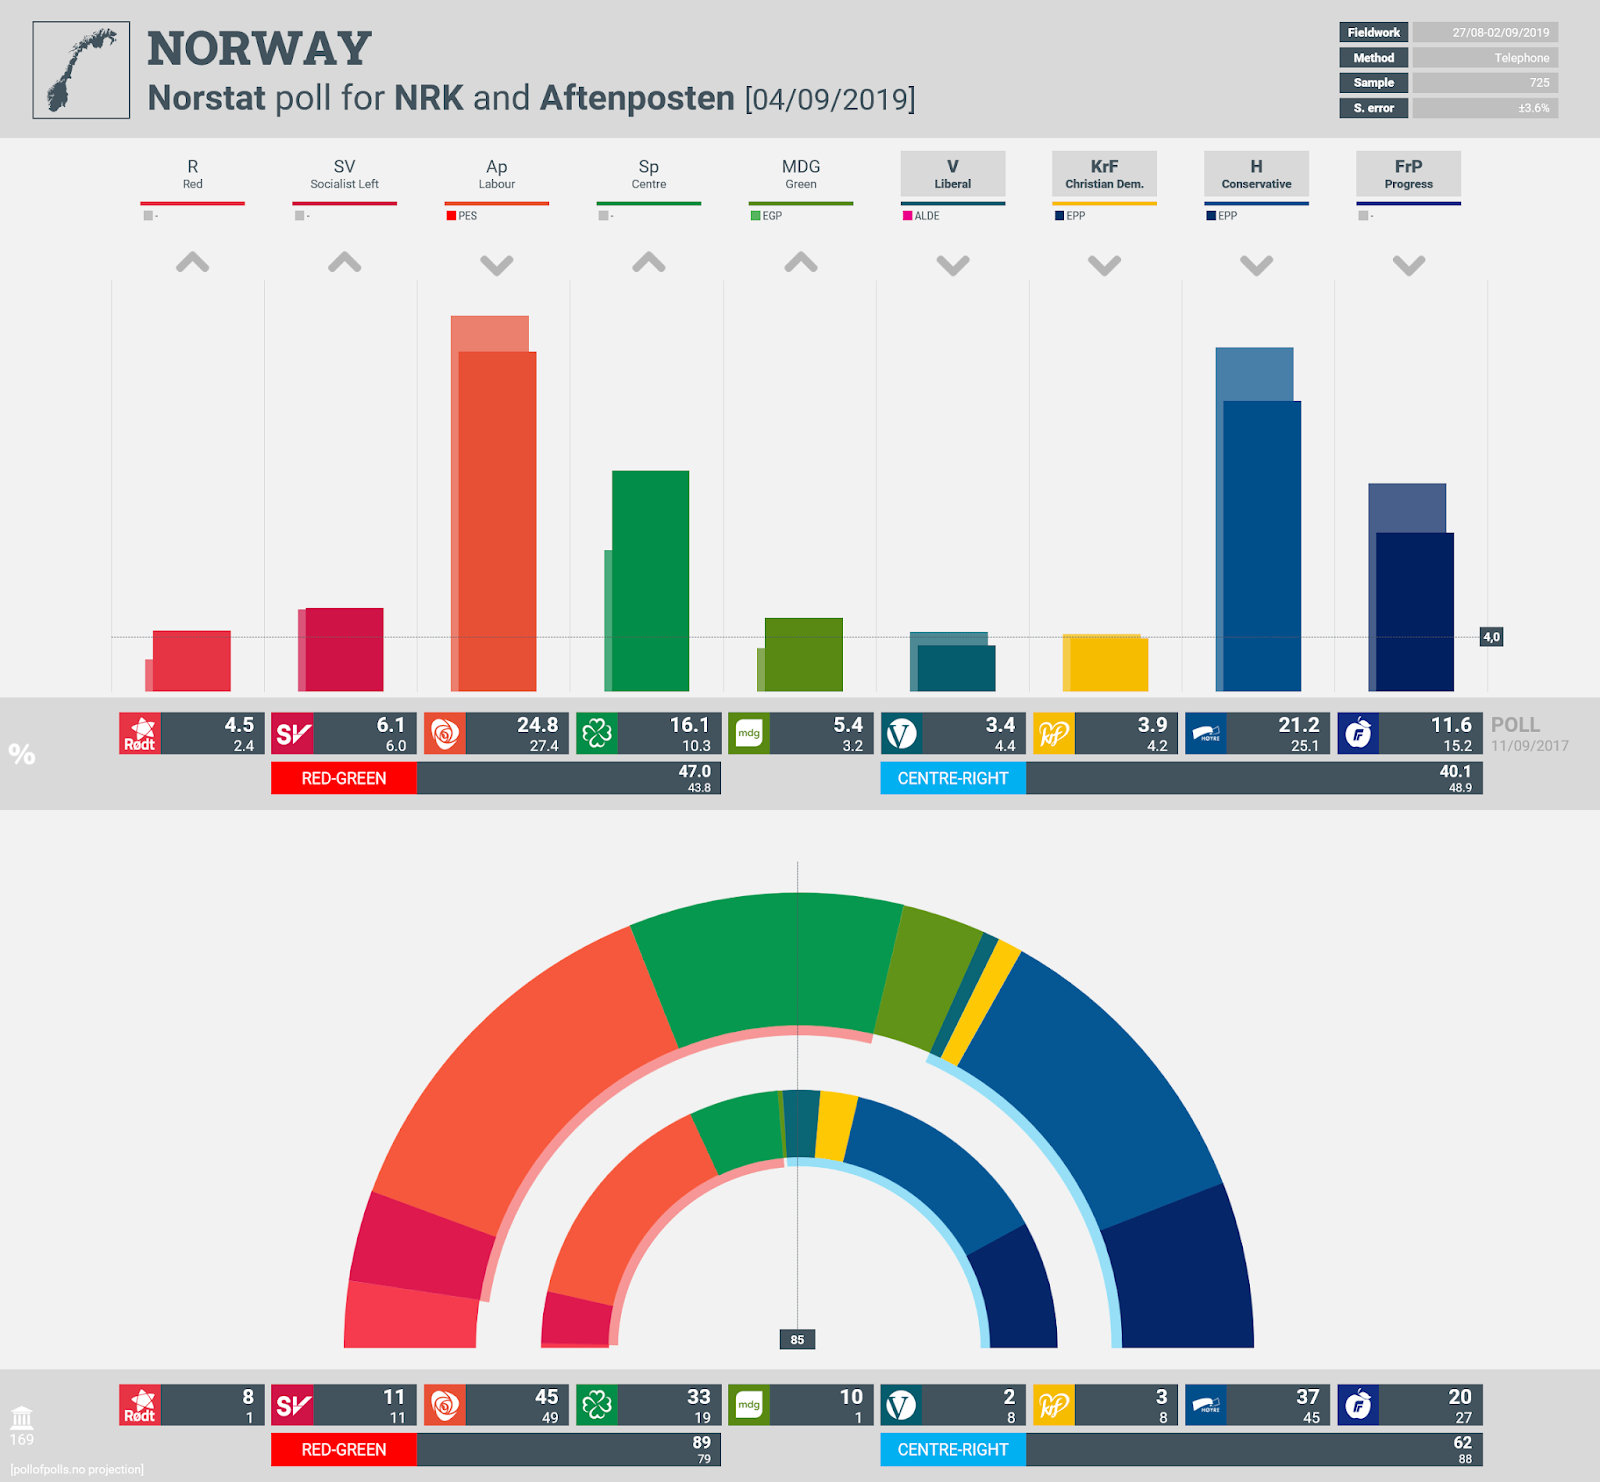 NORWAY: Norstat poll chart for NRK and Aftenposten, 4 September 2019